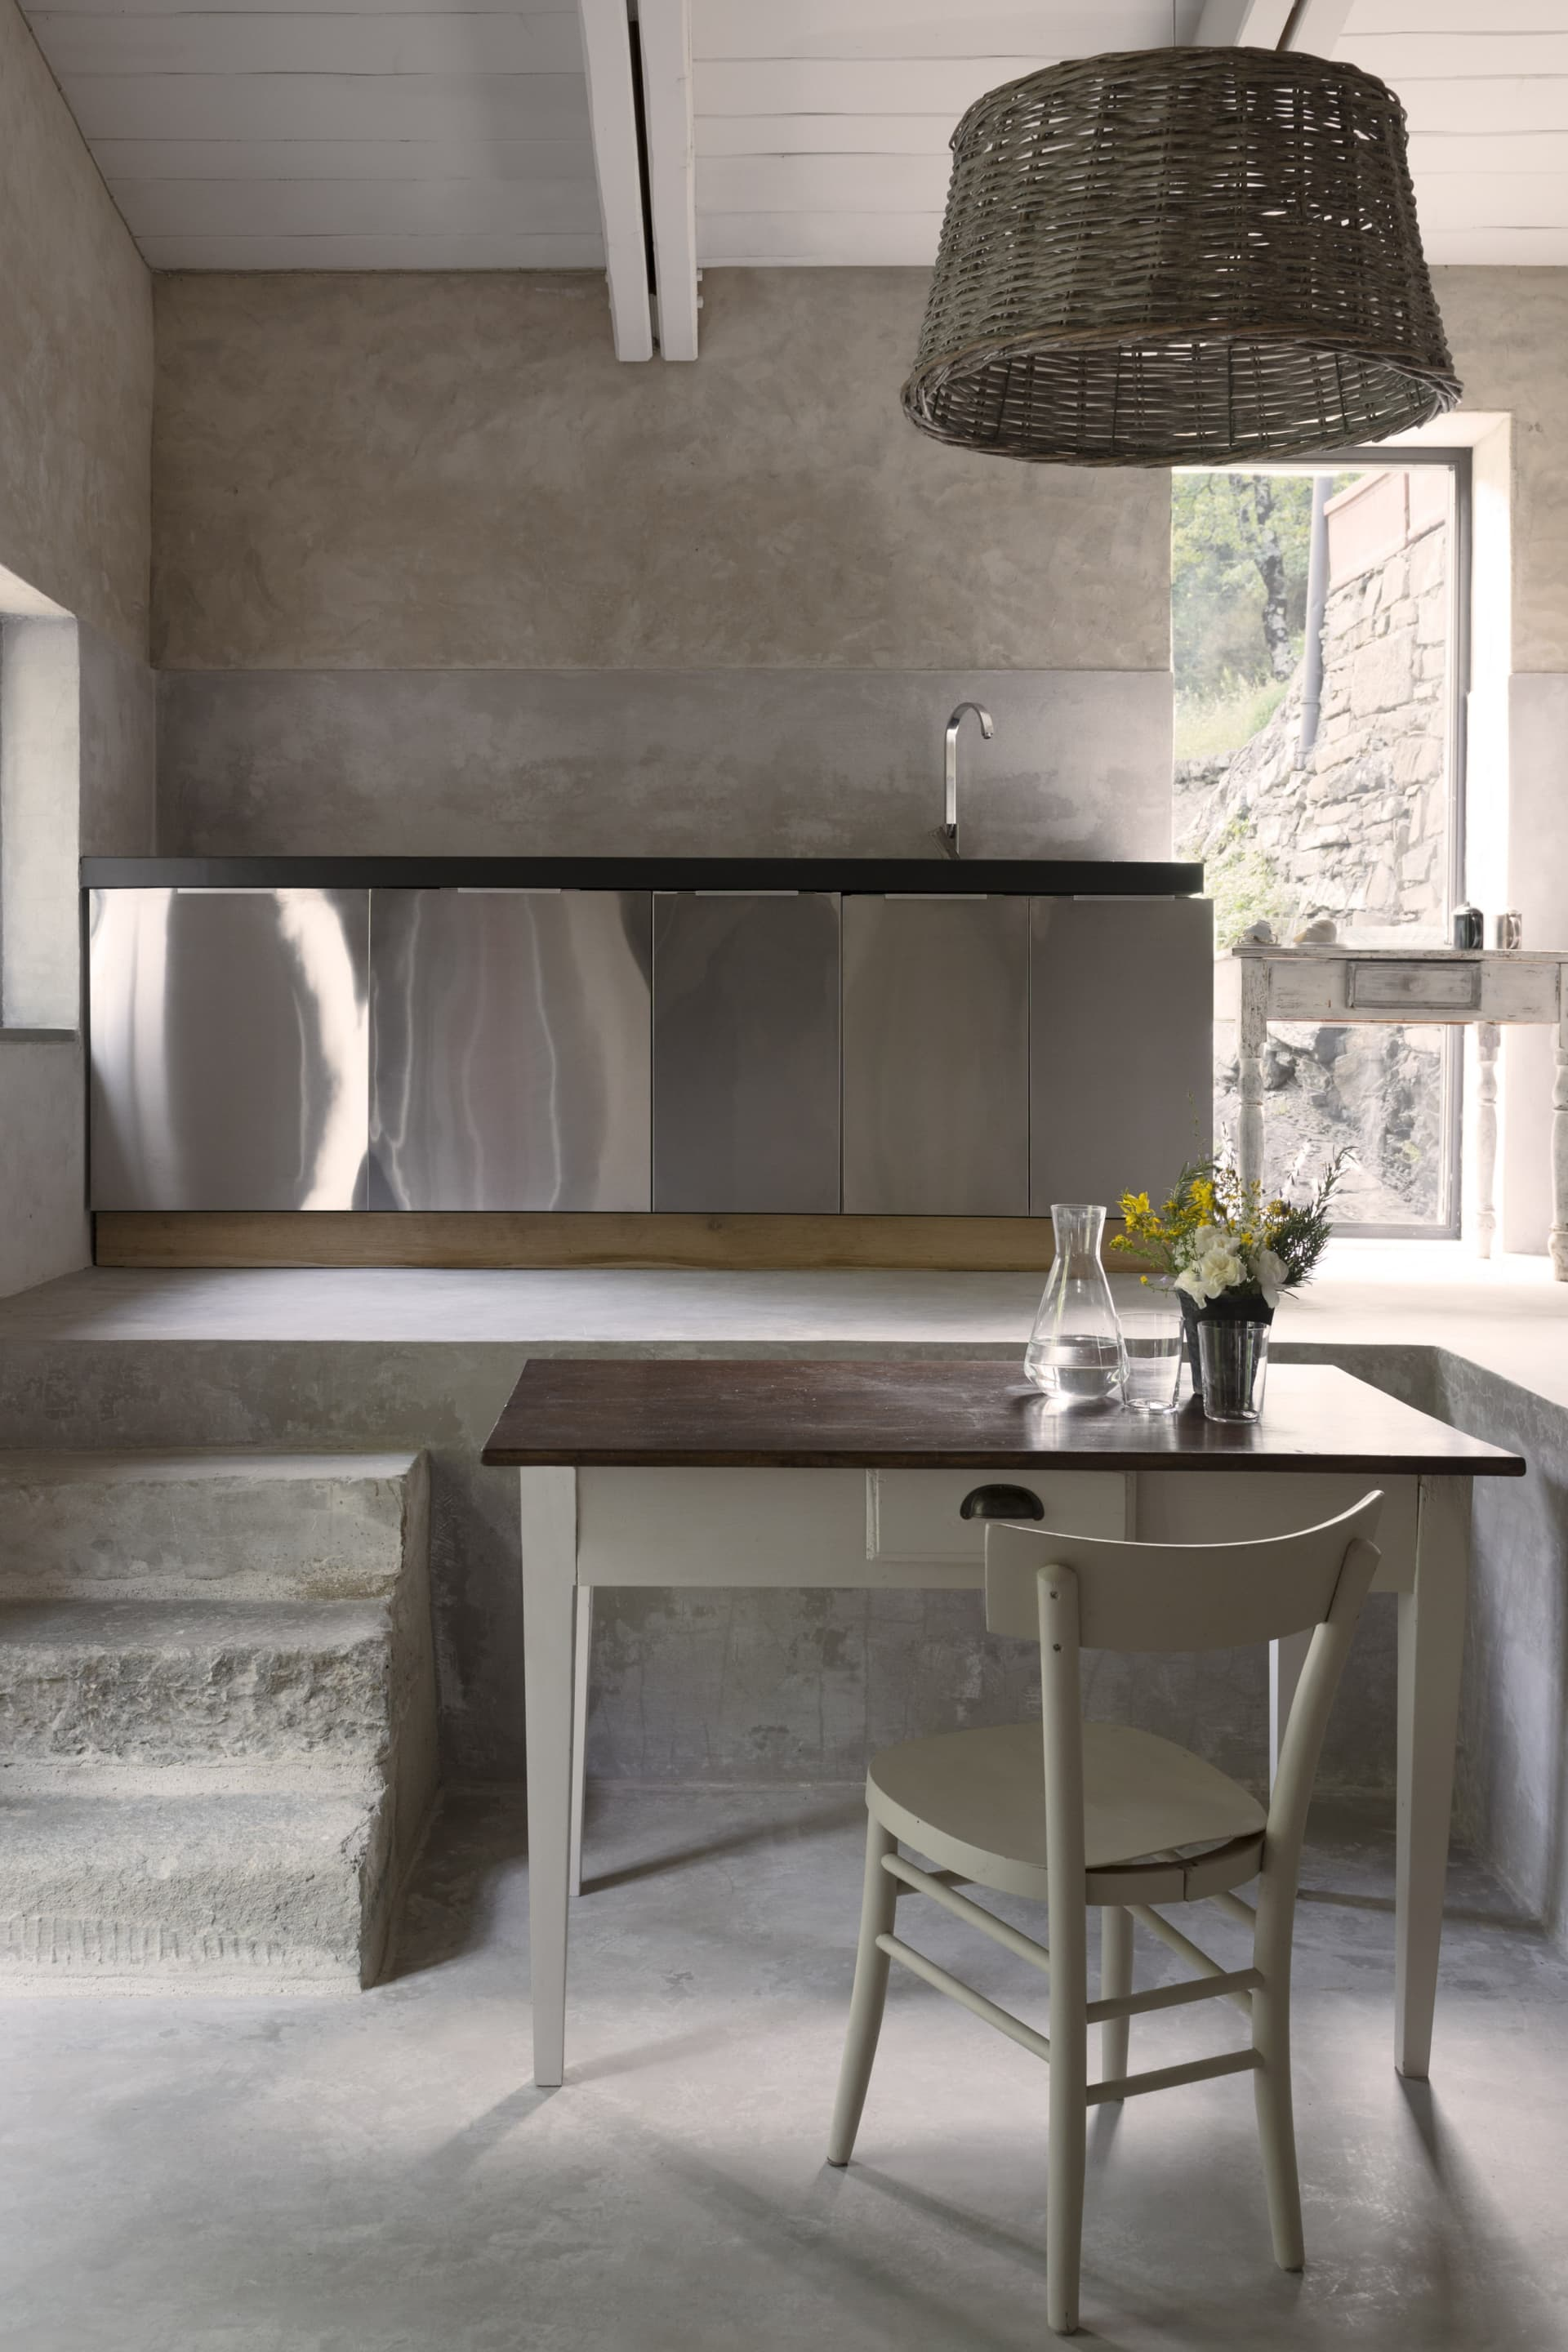 The cooking corner of the apartment La Tramoggia, an independent outbuilding for two people.